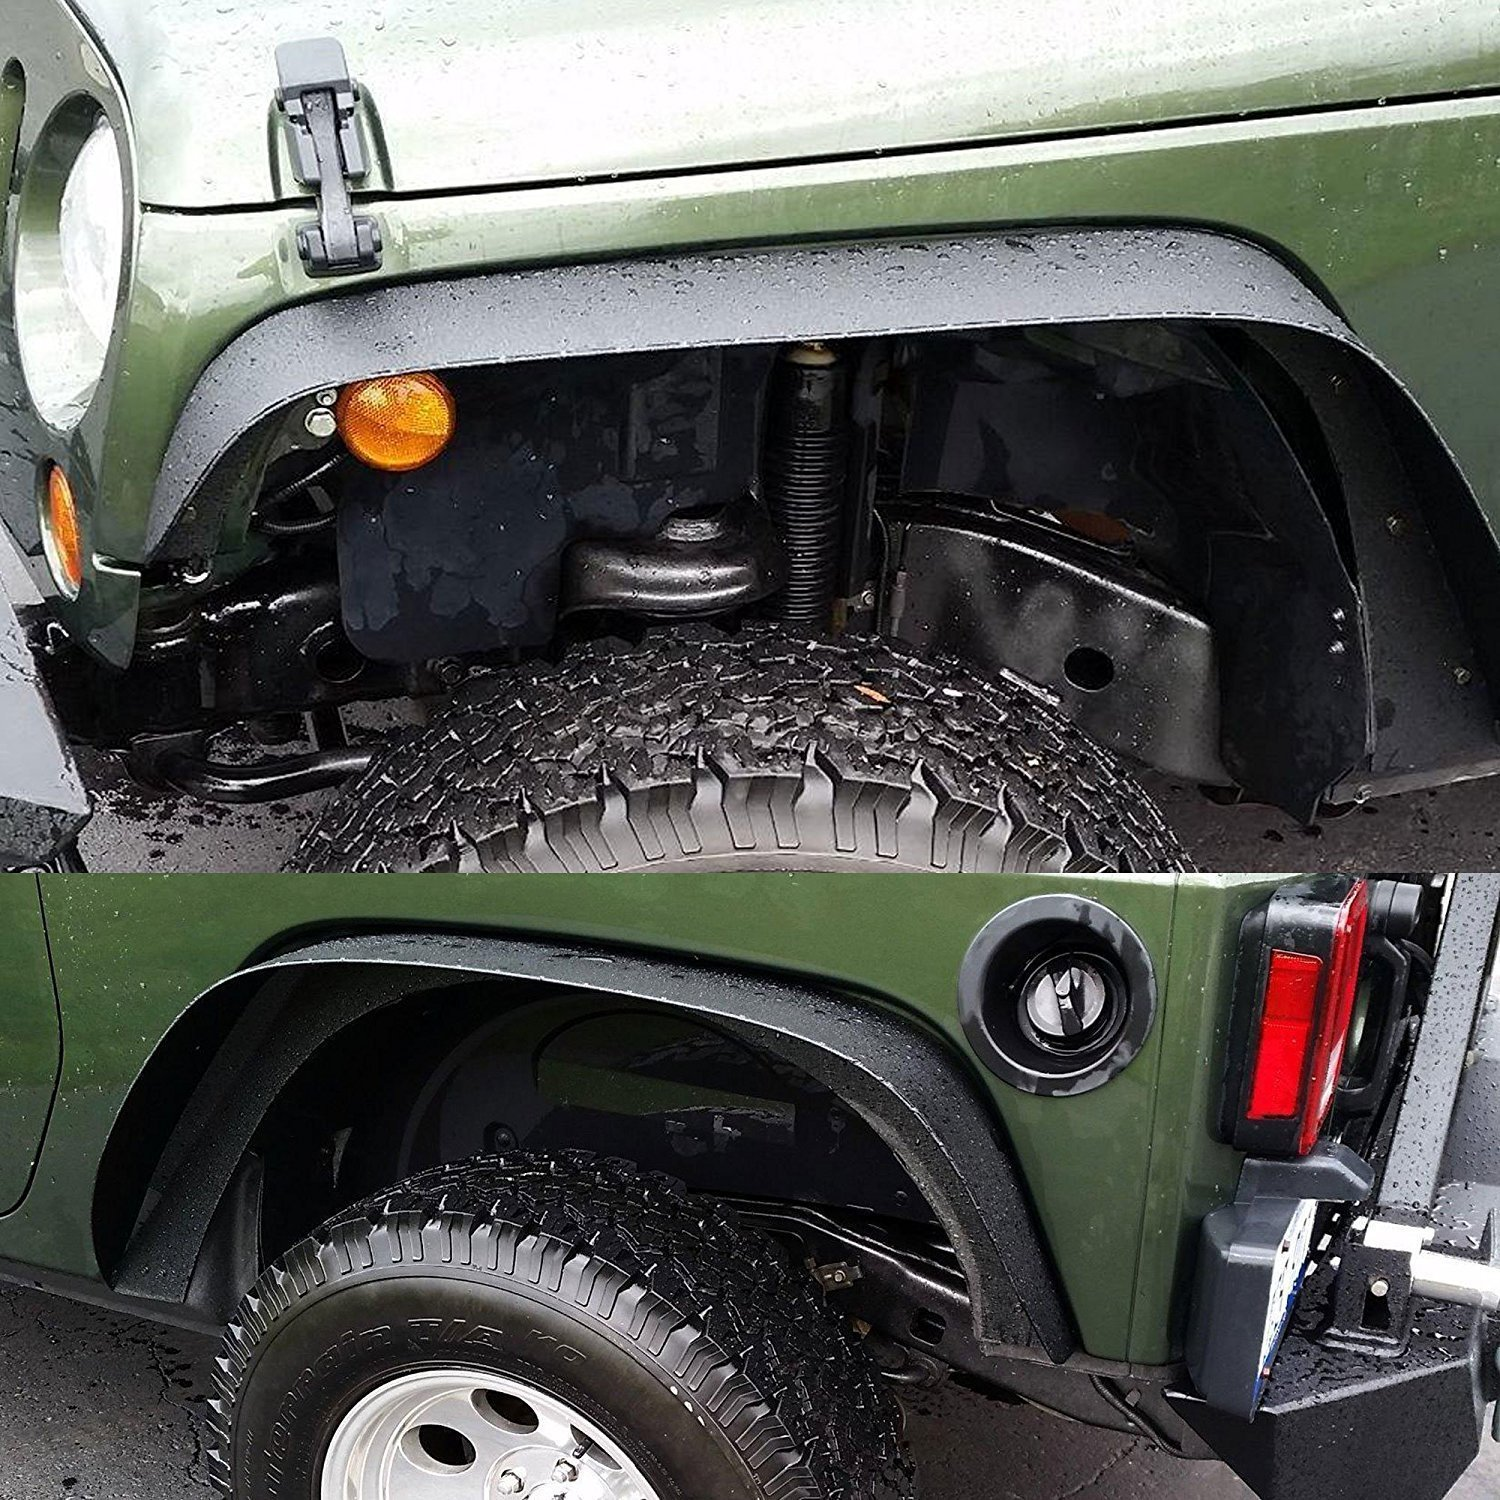 TURBOSII Flat Style Front and Rear Fender Flares Kits for 2007-2015 Jeep Jku Rubicon Wrangler Unlimited Sport Sahara Jk 4 Door 2 Dr by TURBOSII